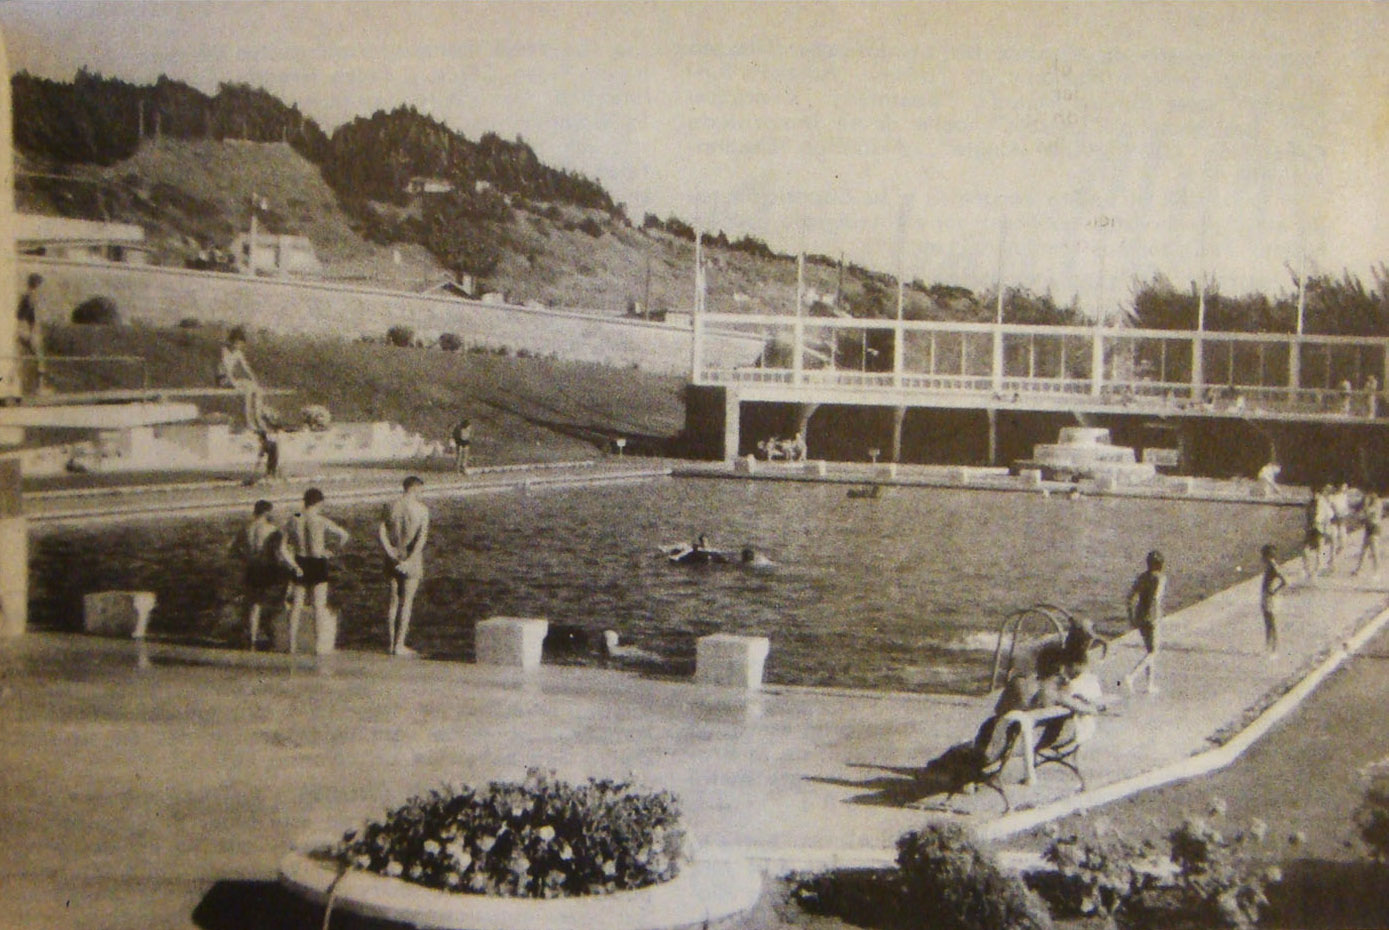 Enterreno - Fotos históricas de chile - fotos antiguas de Chile - Piscina Rocas de Santo Domingo en 1949